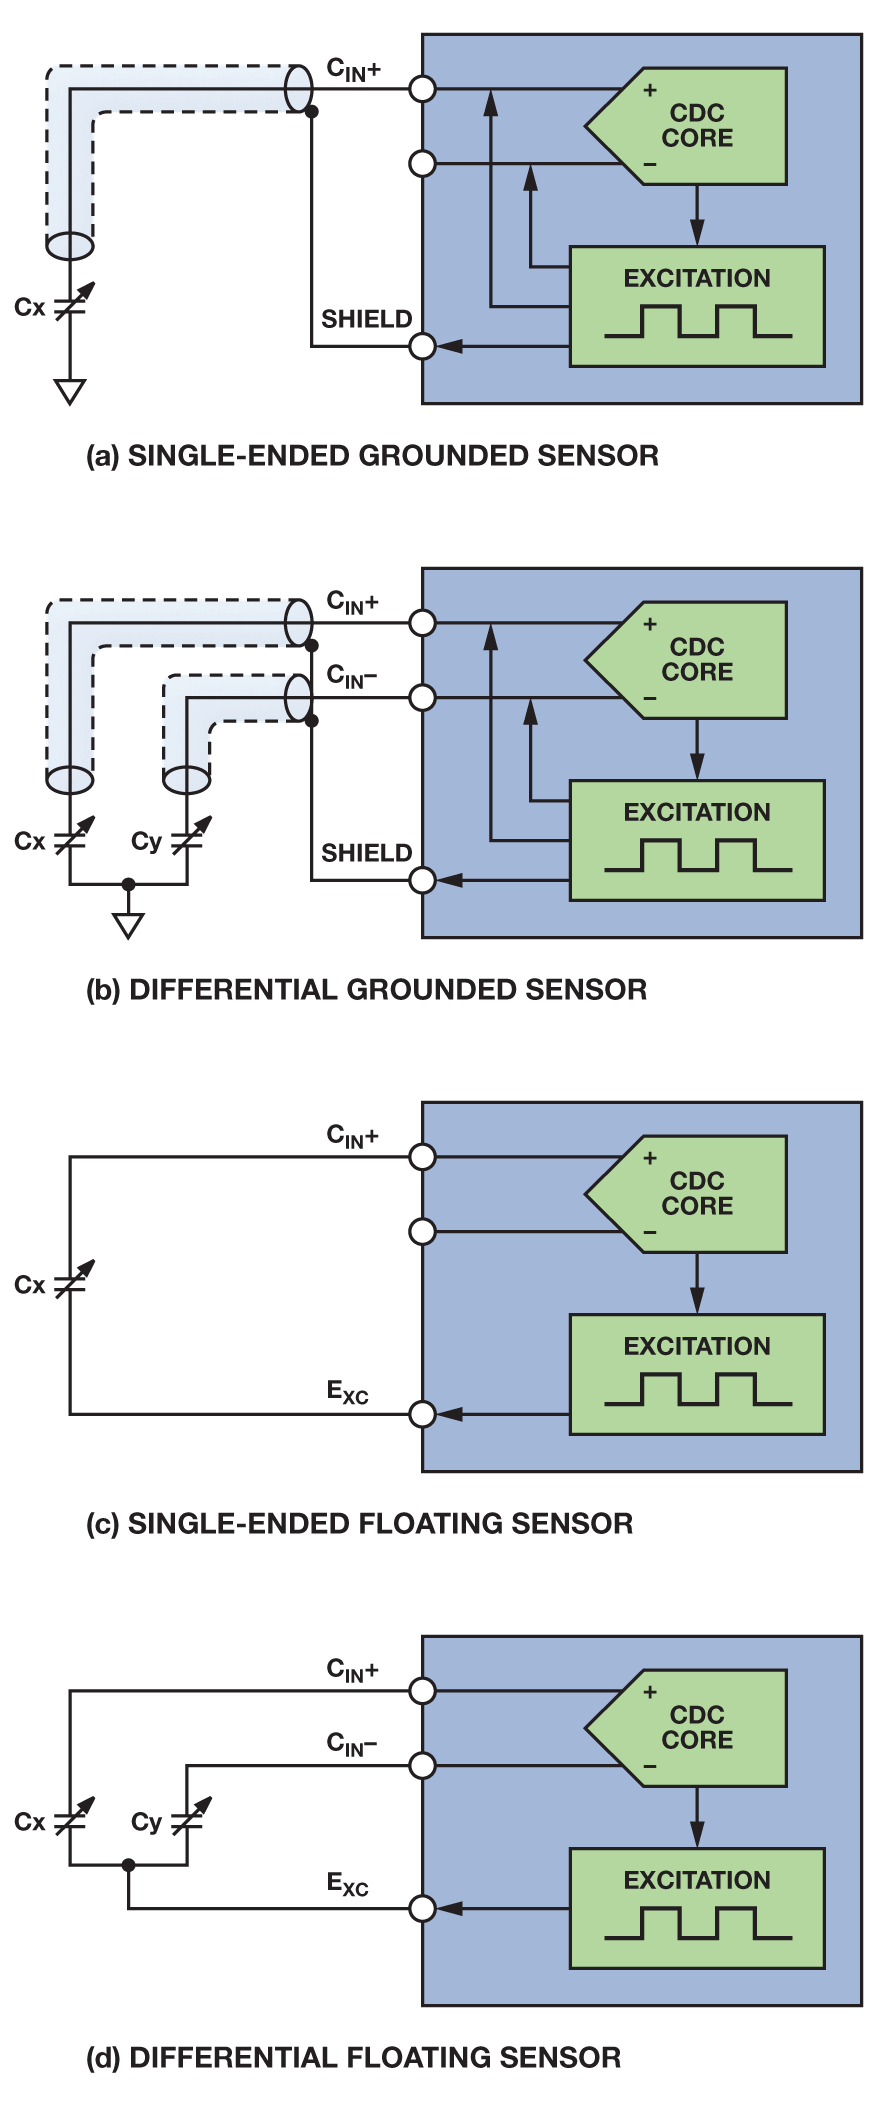 small resolution of configurations for single ended differential grounded and floating sensor applications